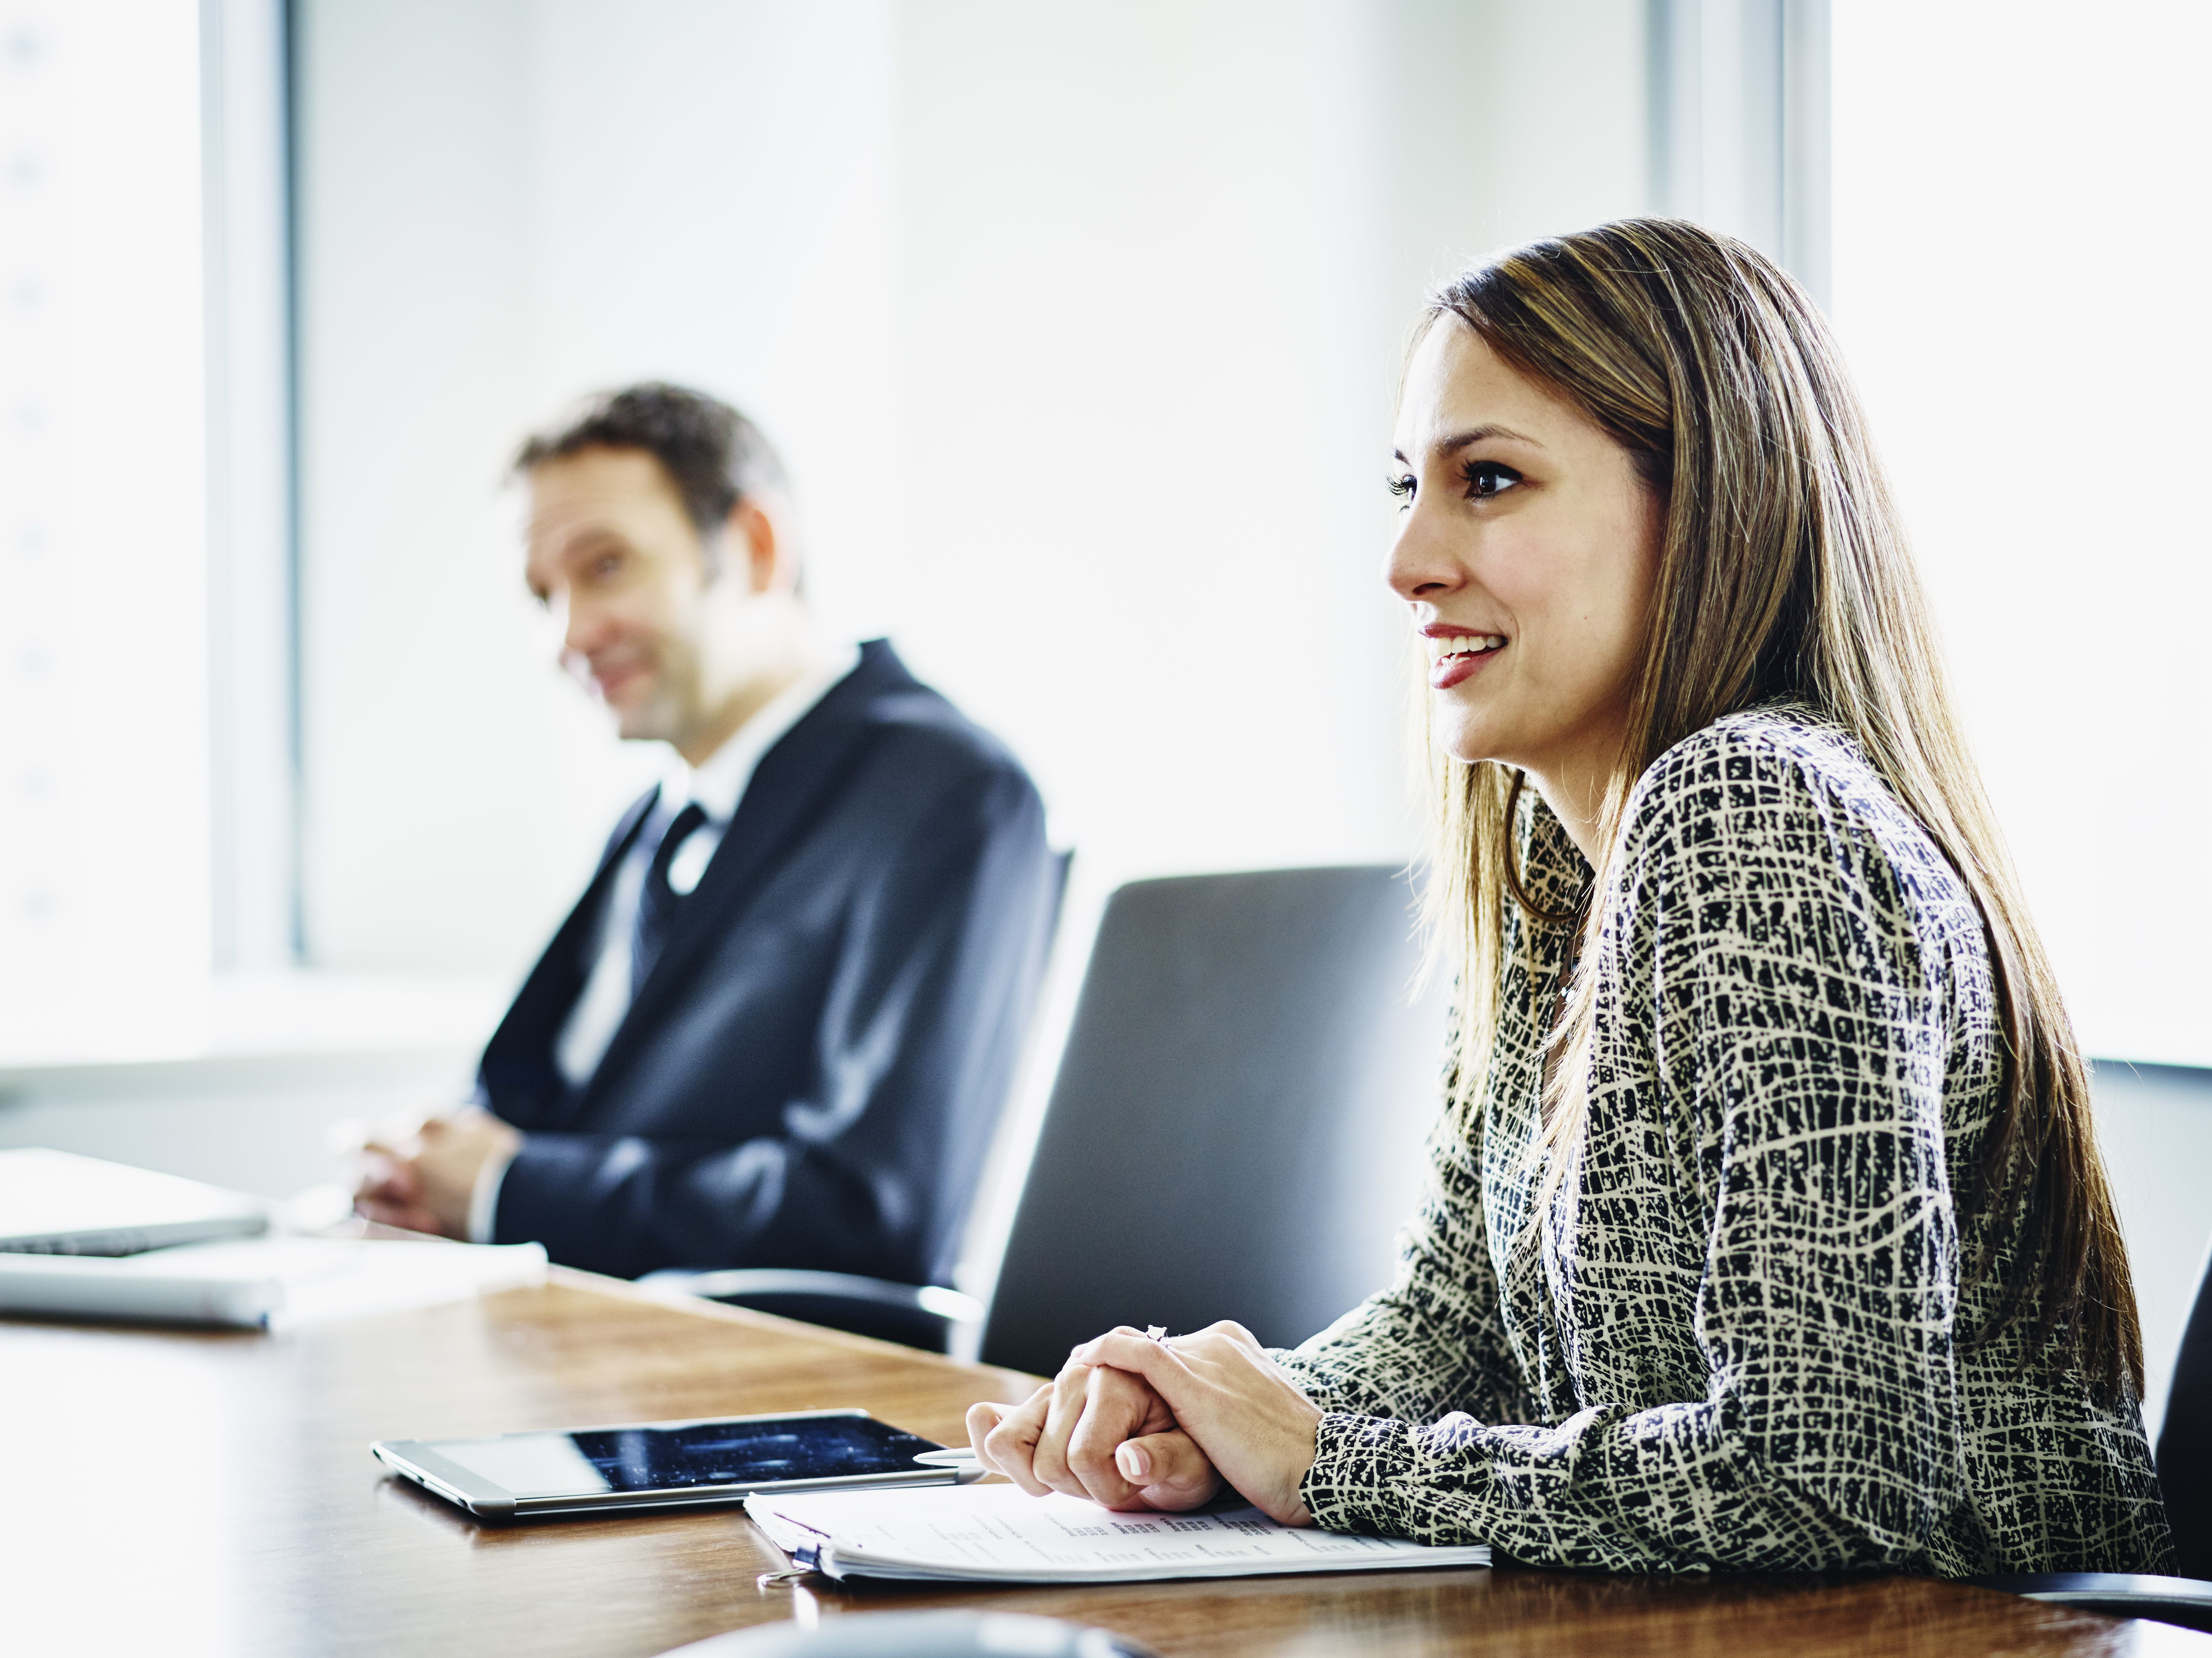 business executive in discussion with colleagues 539253399 593707965f9b58d58a5cb301 - Internship Opportunity in The Phone Industry